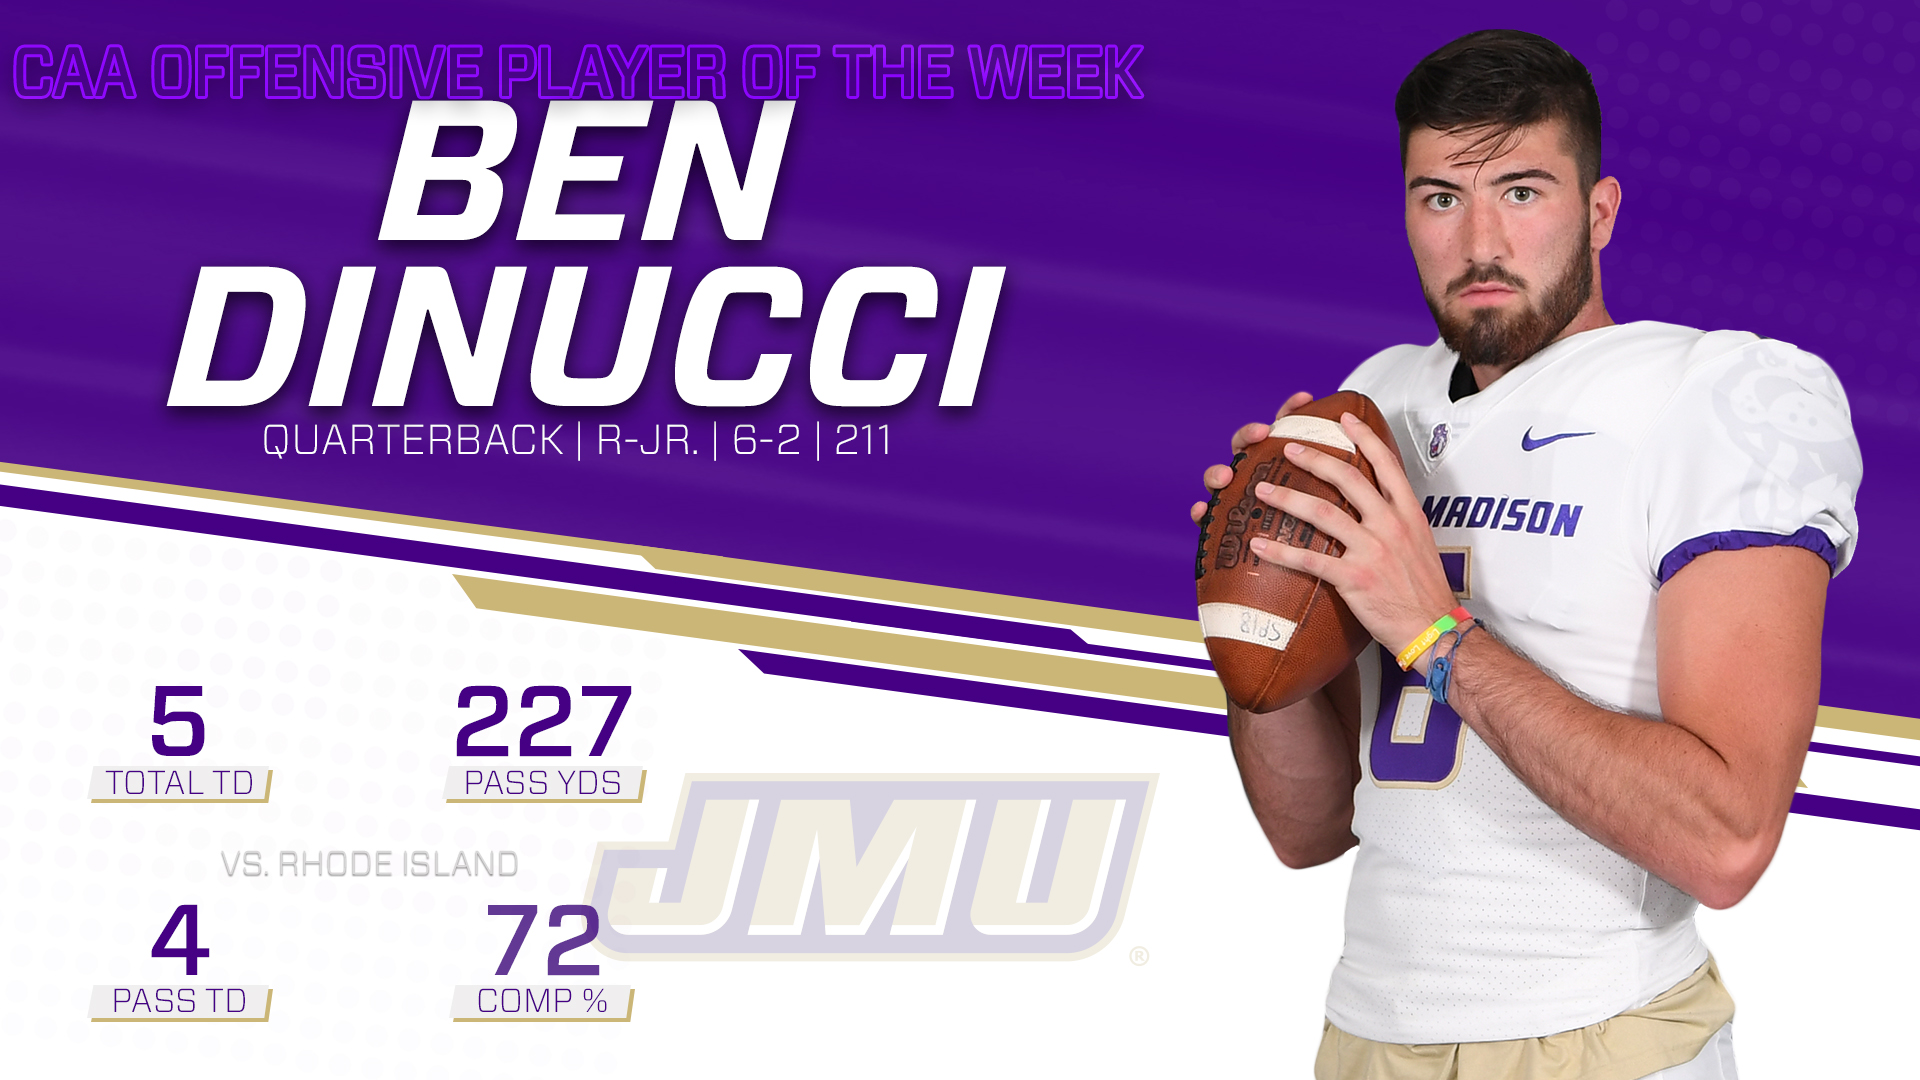 Football: DiNucci Reels in CAA Offensive Player of the Week Award